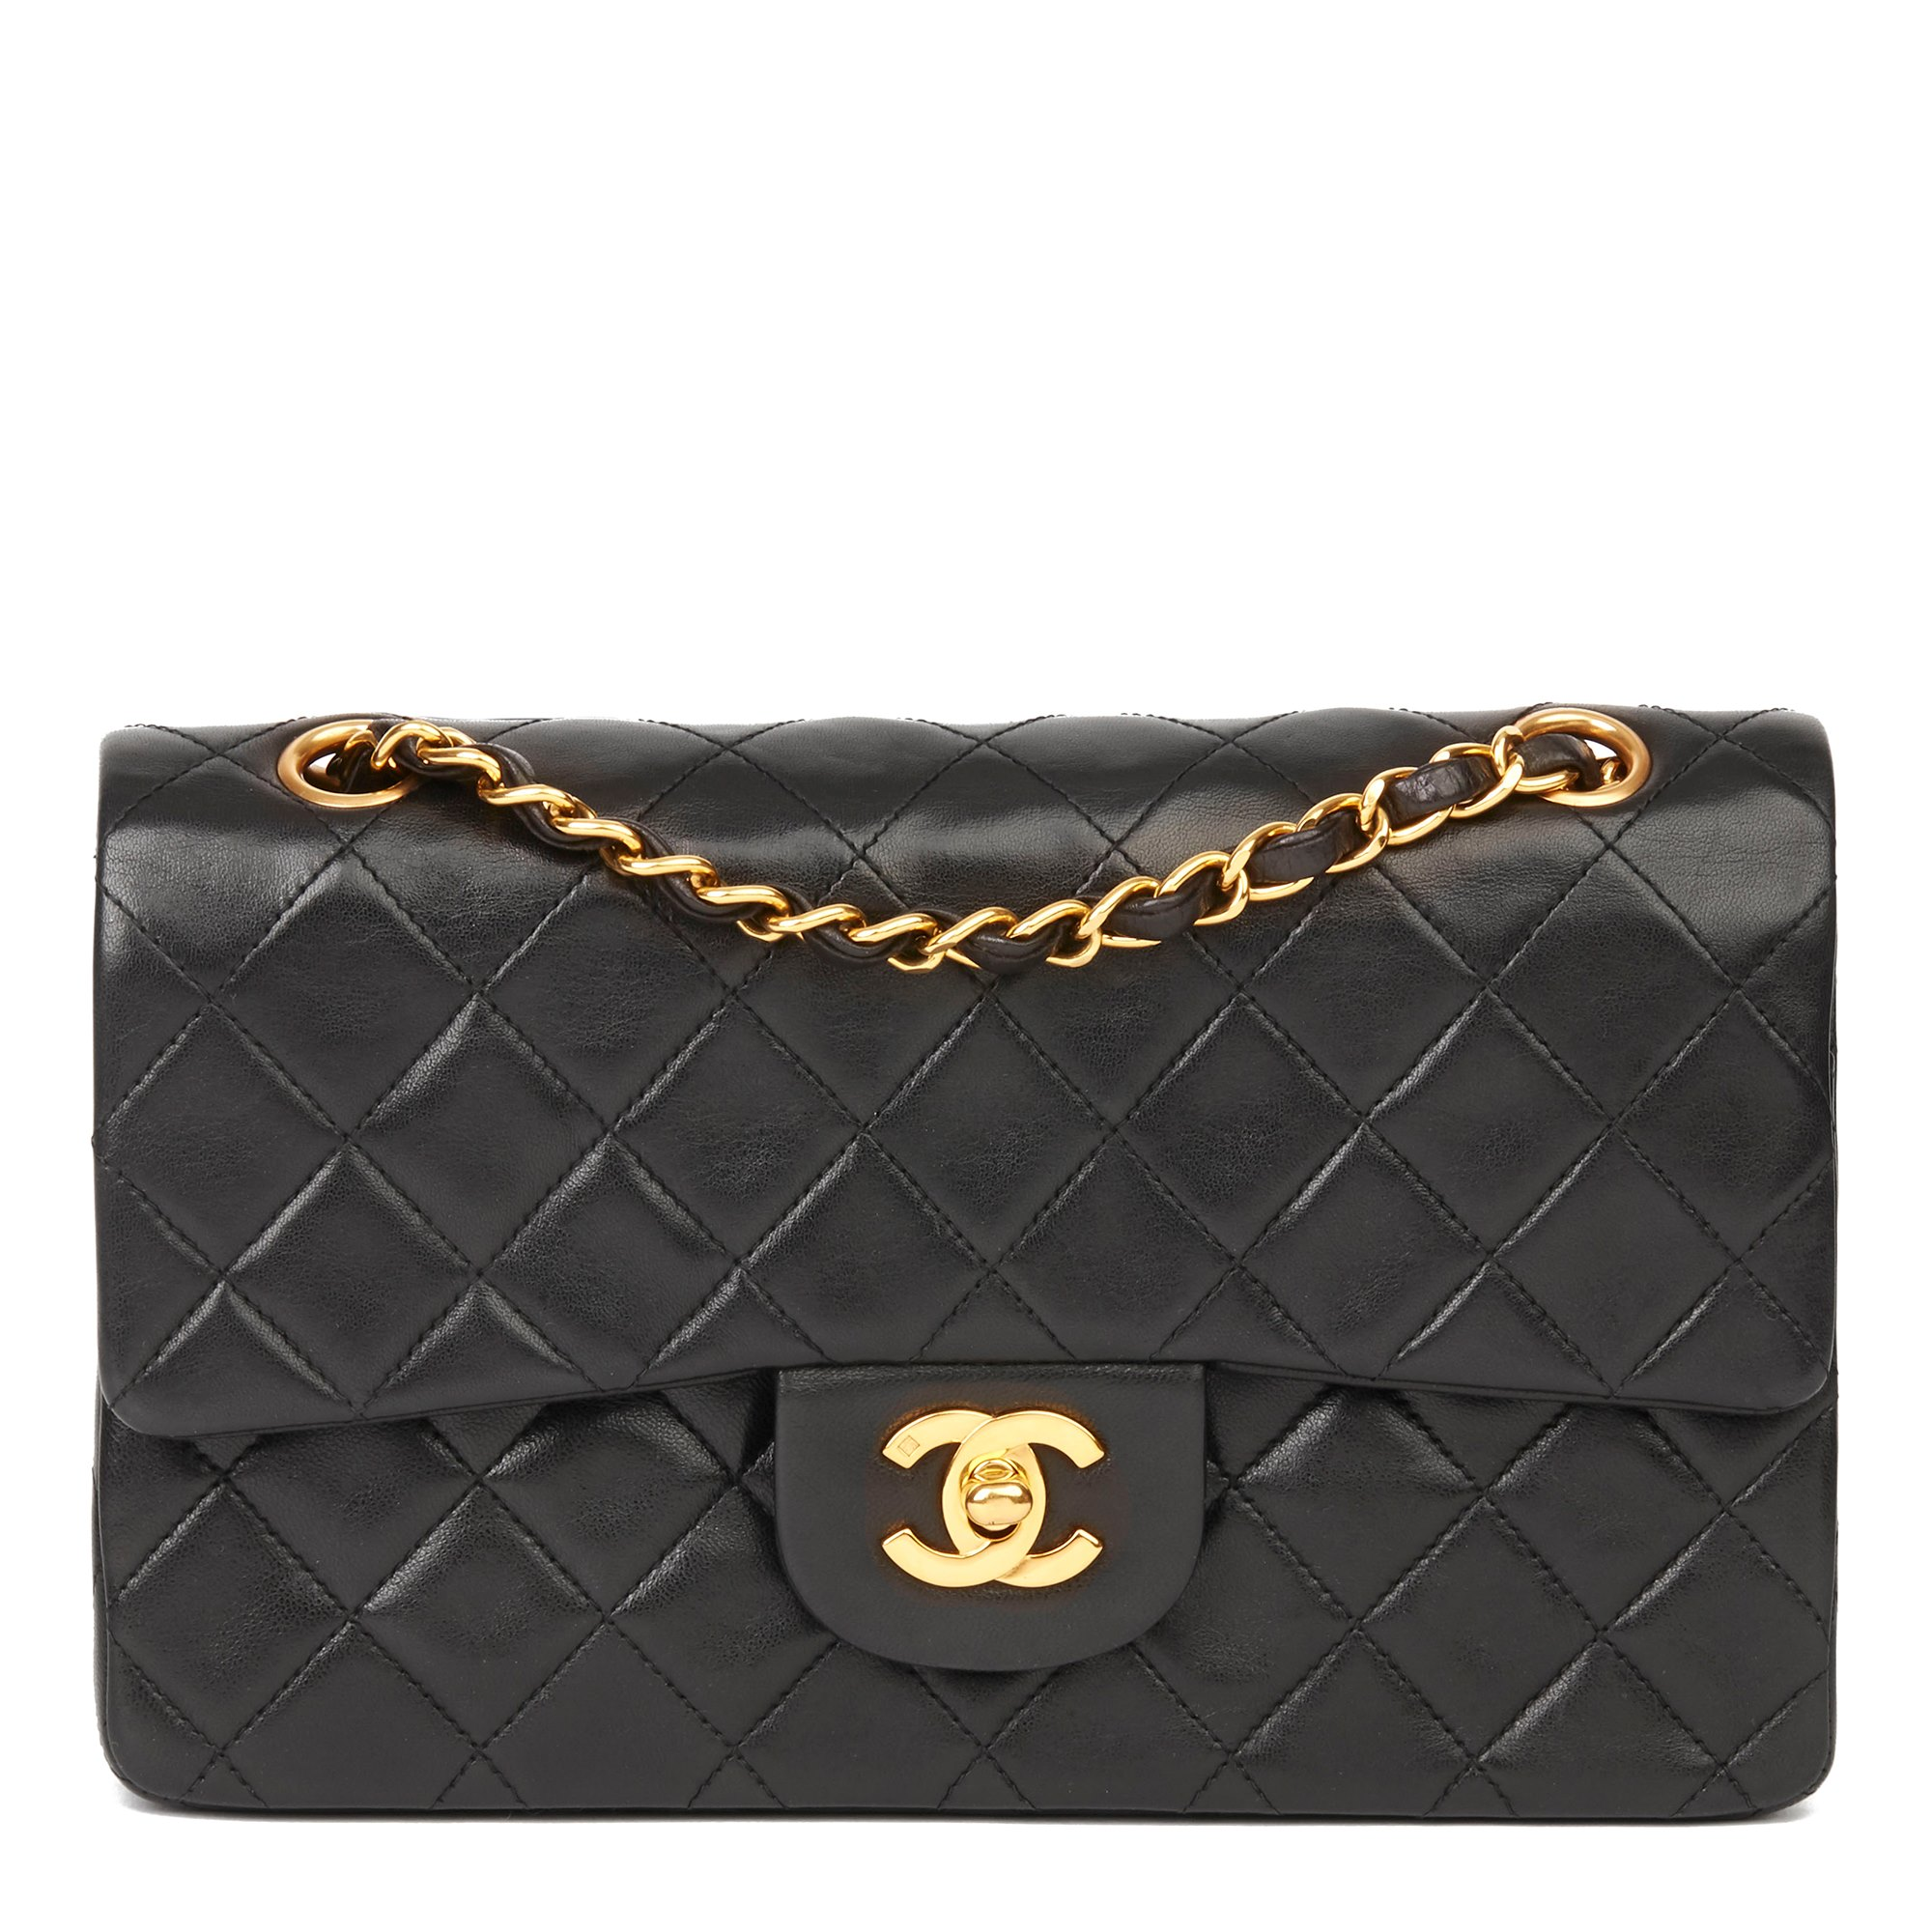 Chanel Black Quilted Lambskin Vintage Small Classic Double Flap